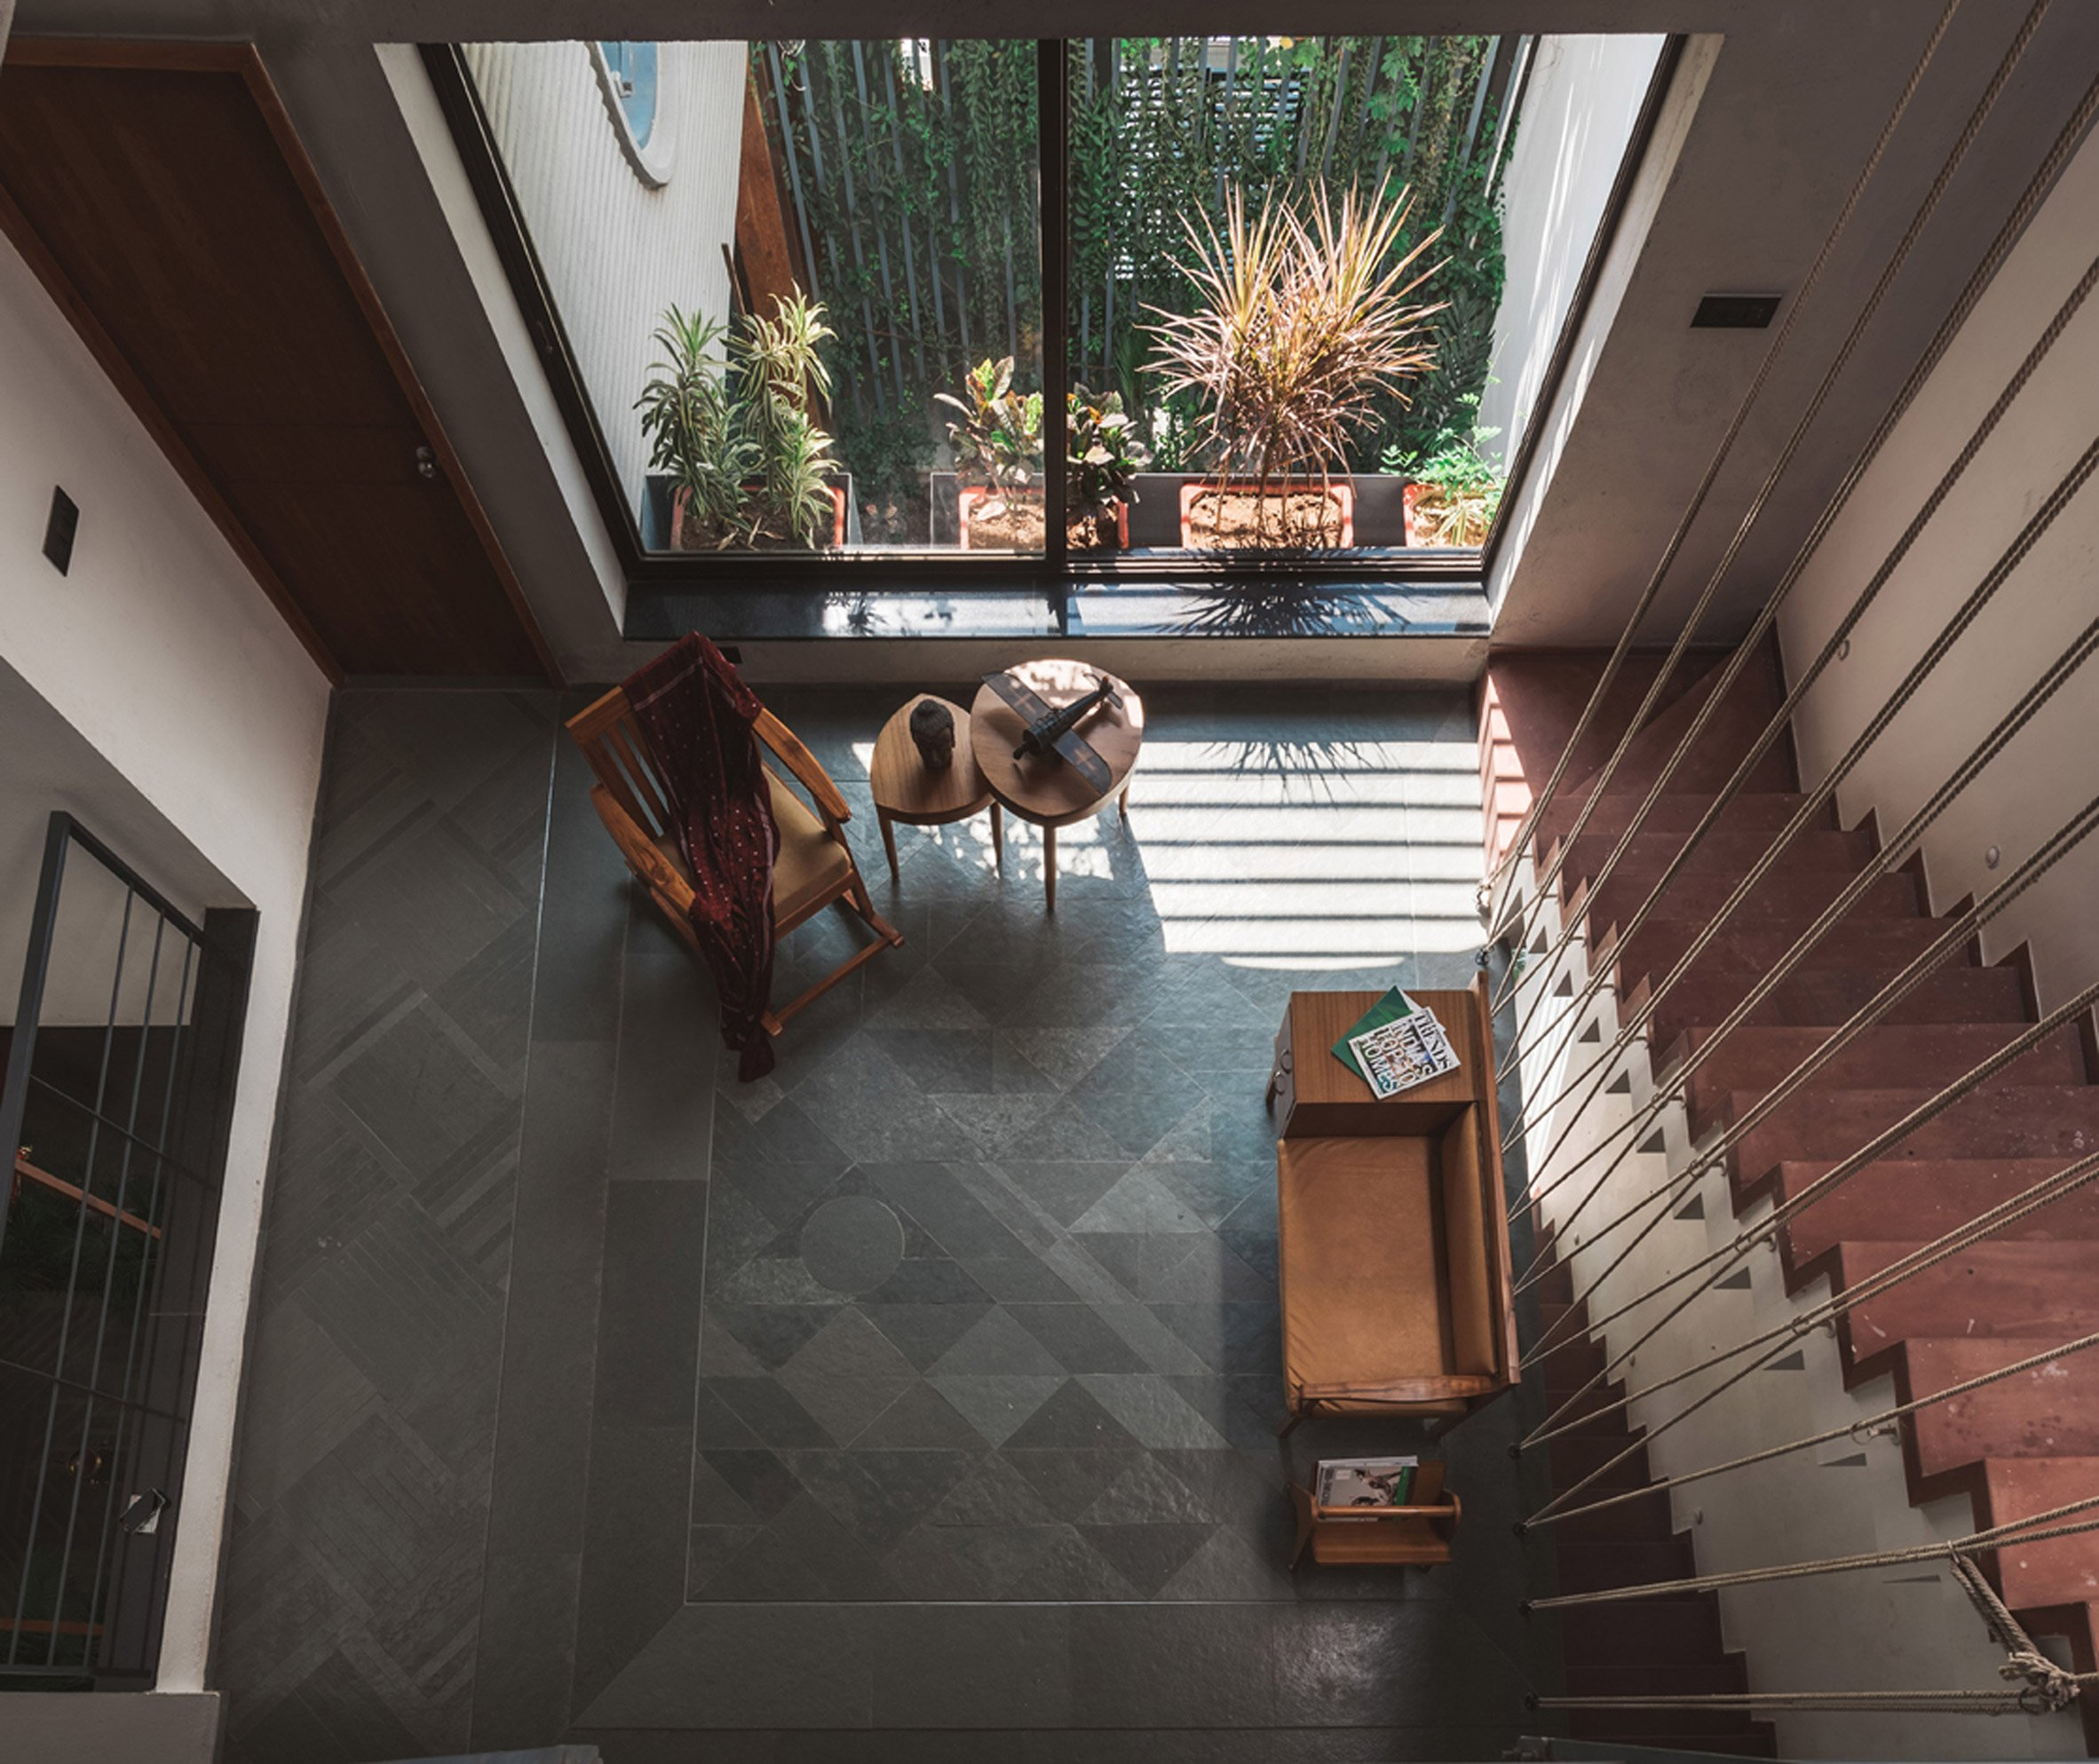 Living spaces at this house in the Indian city of Surat are arranged around a verdant courtyard lined with glass walls that can be retracted to open the interior up to the outdoors